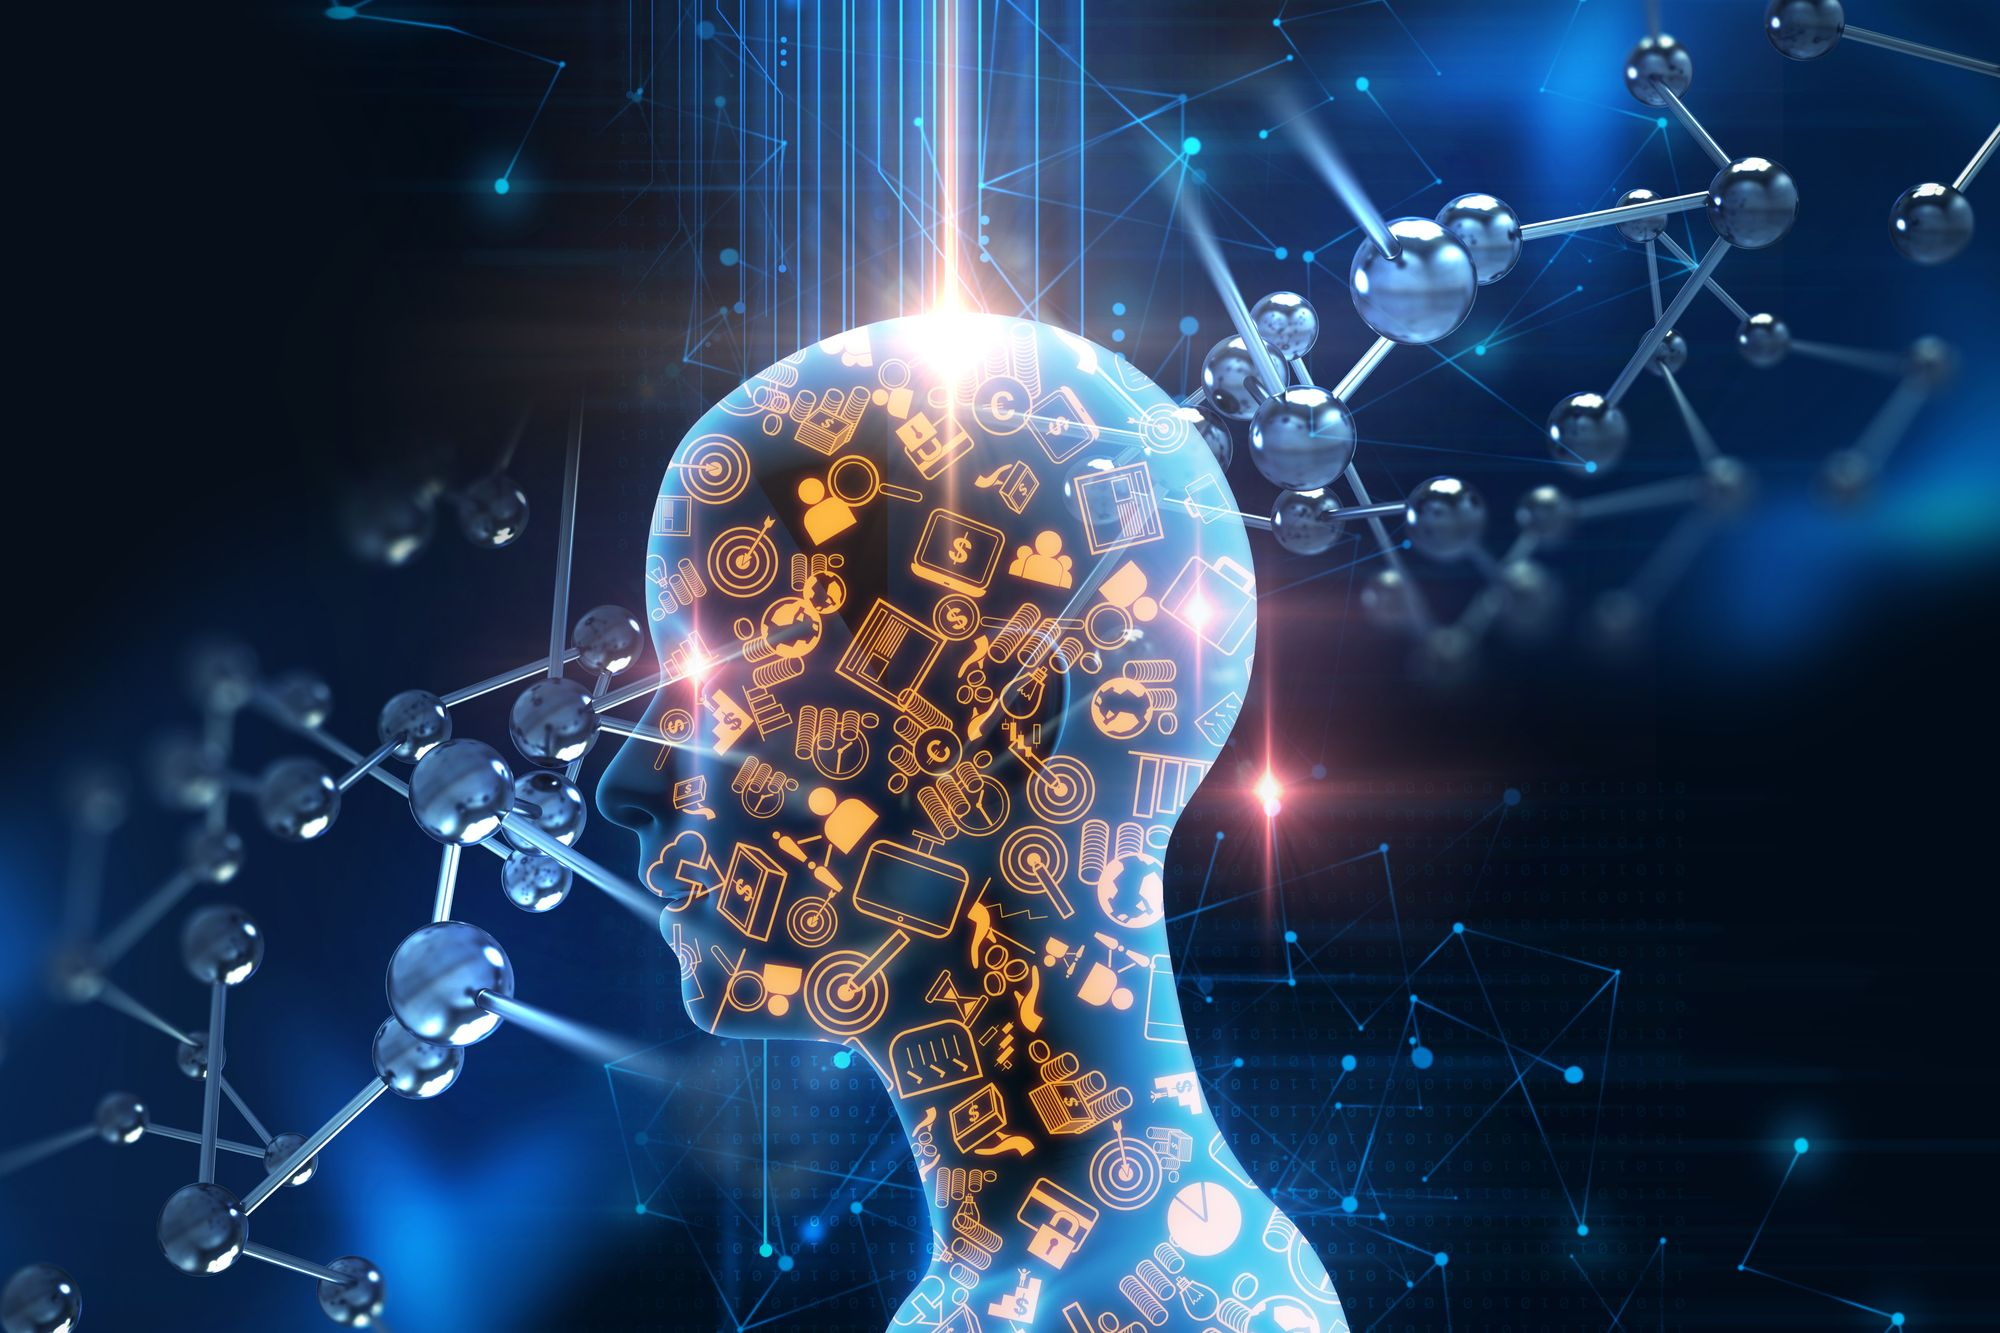 2020: The Year Of Artificial Intelligence For Your Business